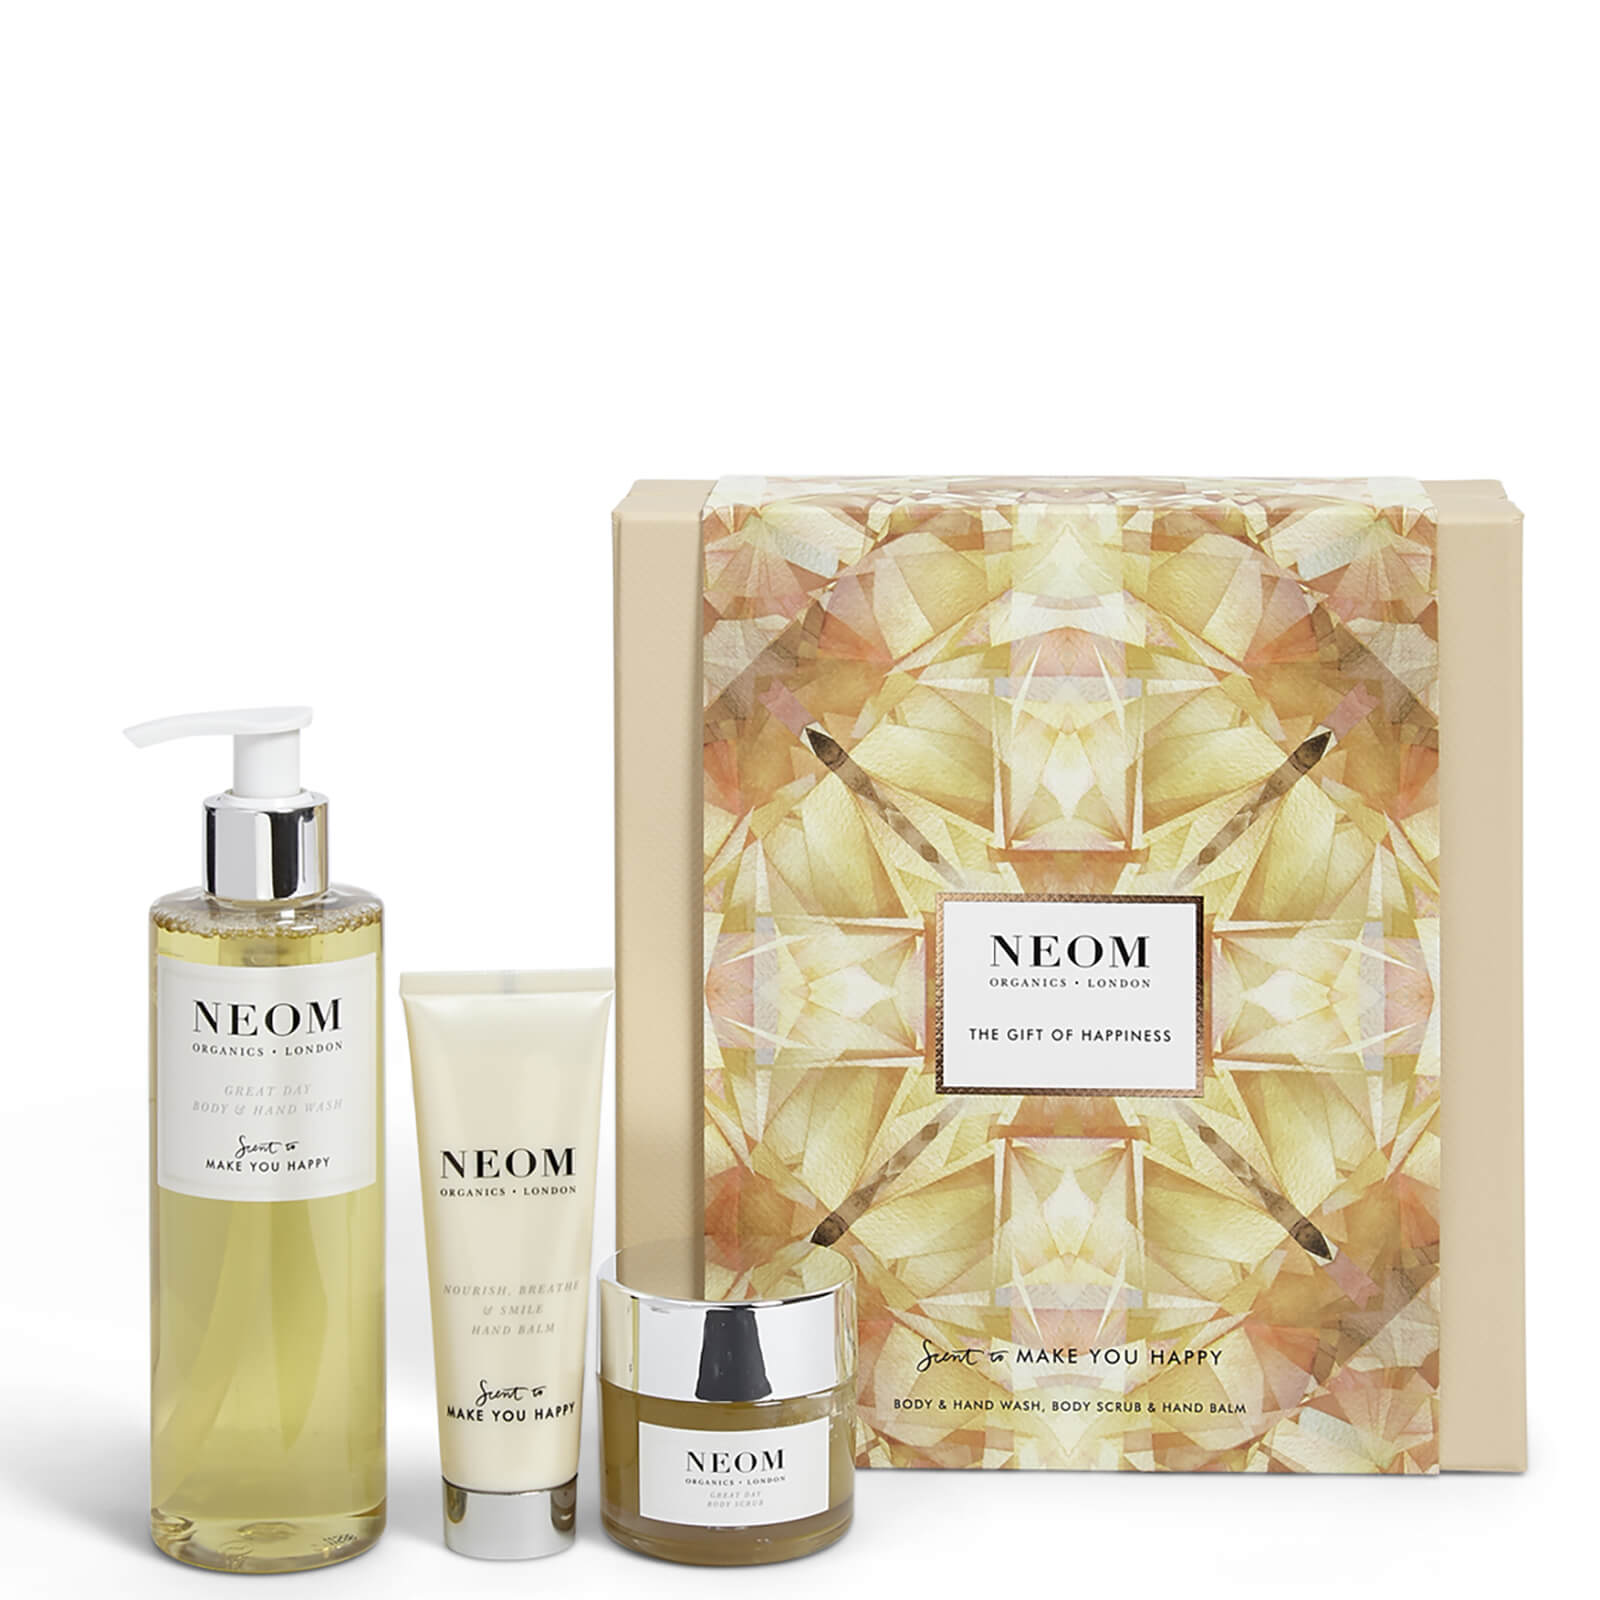 d2a654cf6e90ac NEOM The Gift of Happiness Set (Worth £43.00)   Free Shipping ...